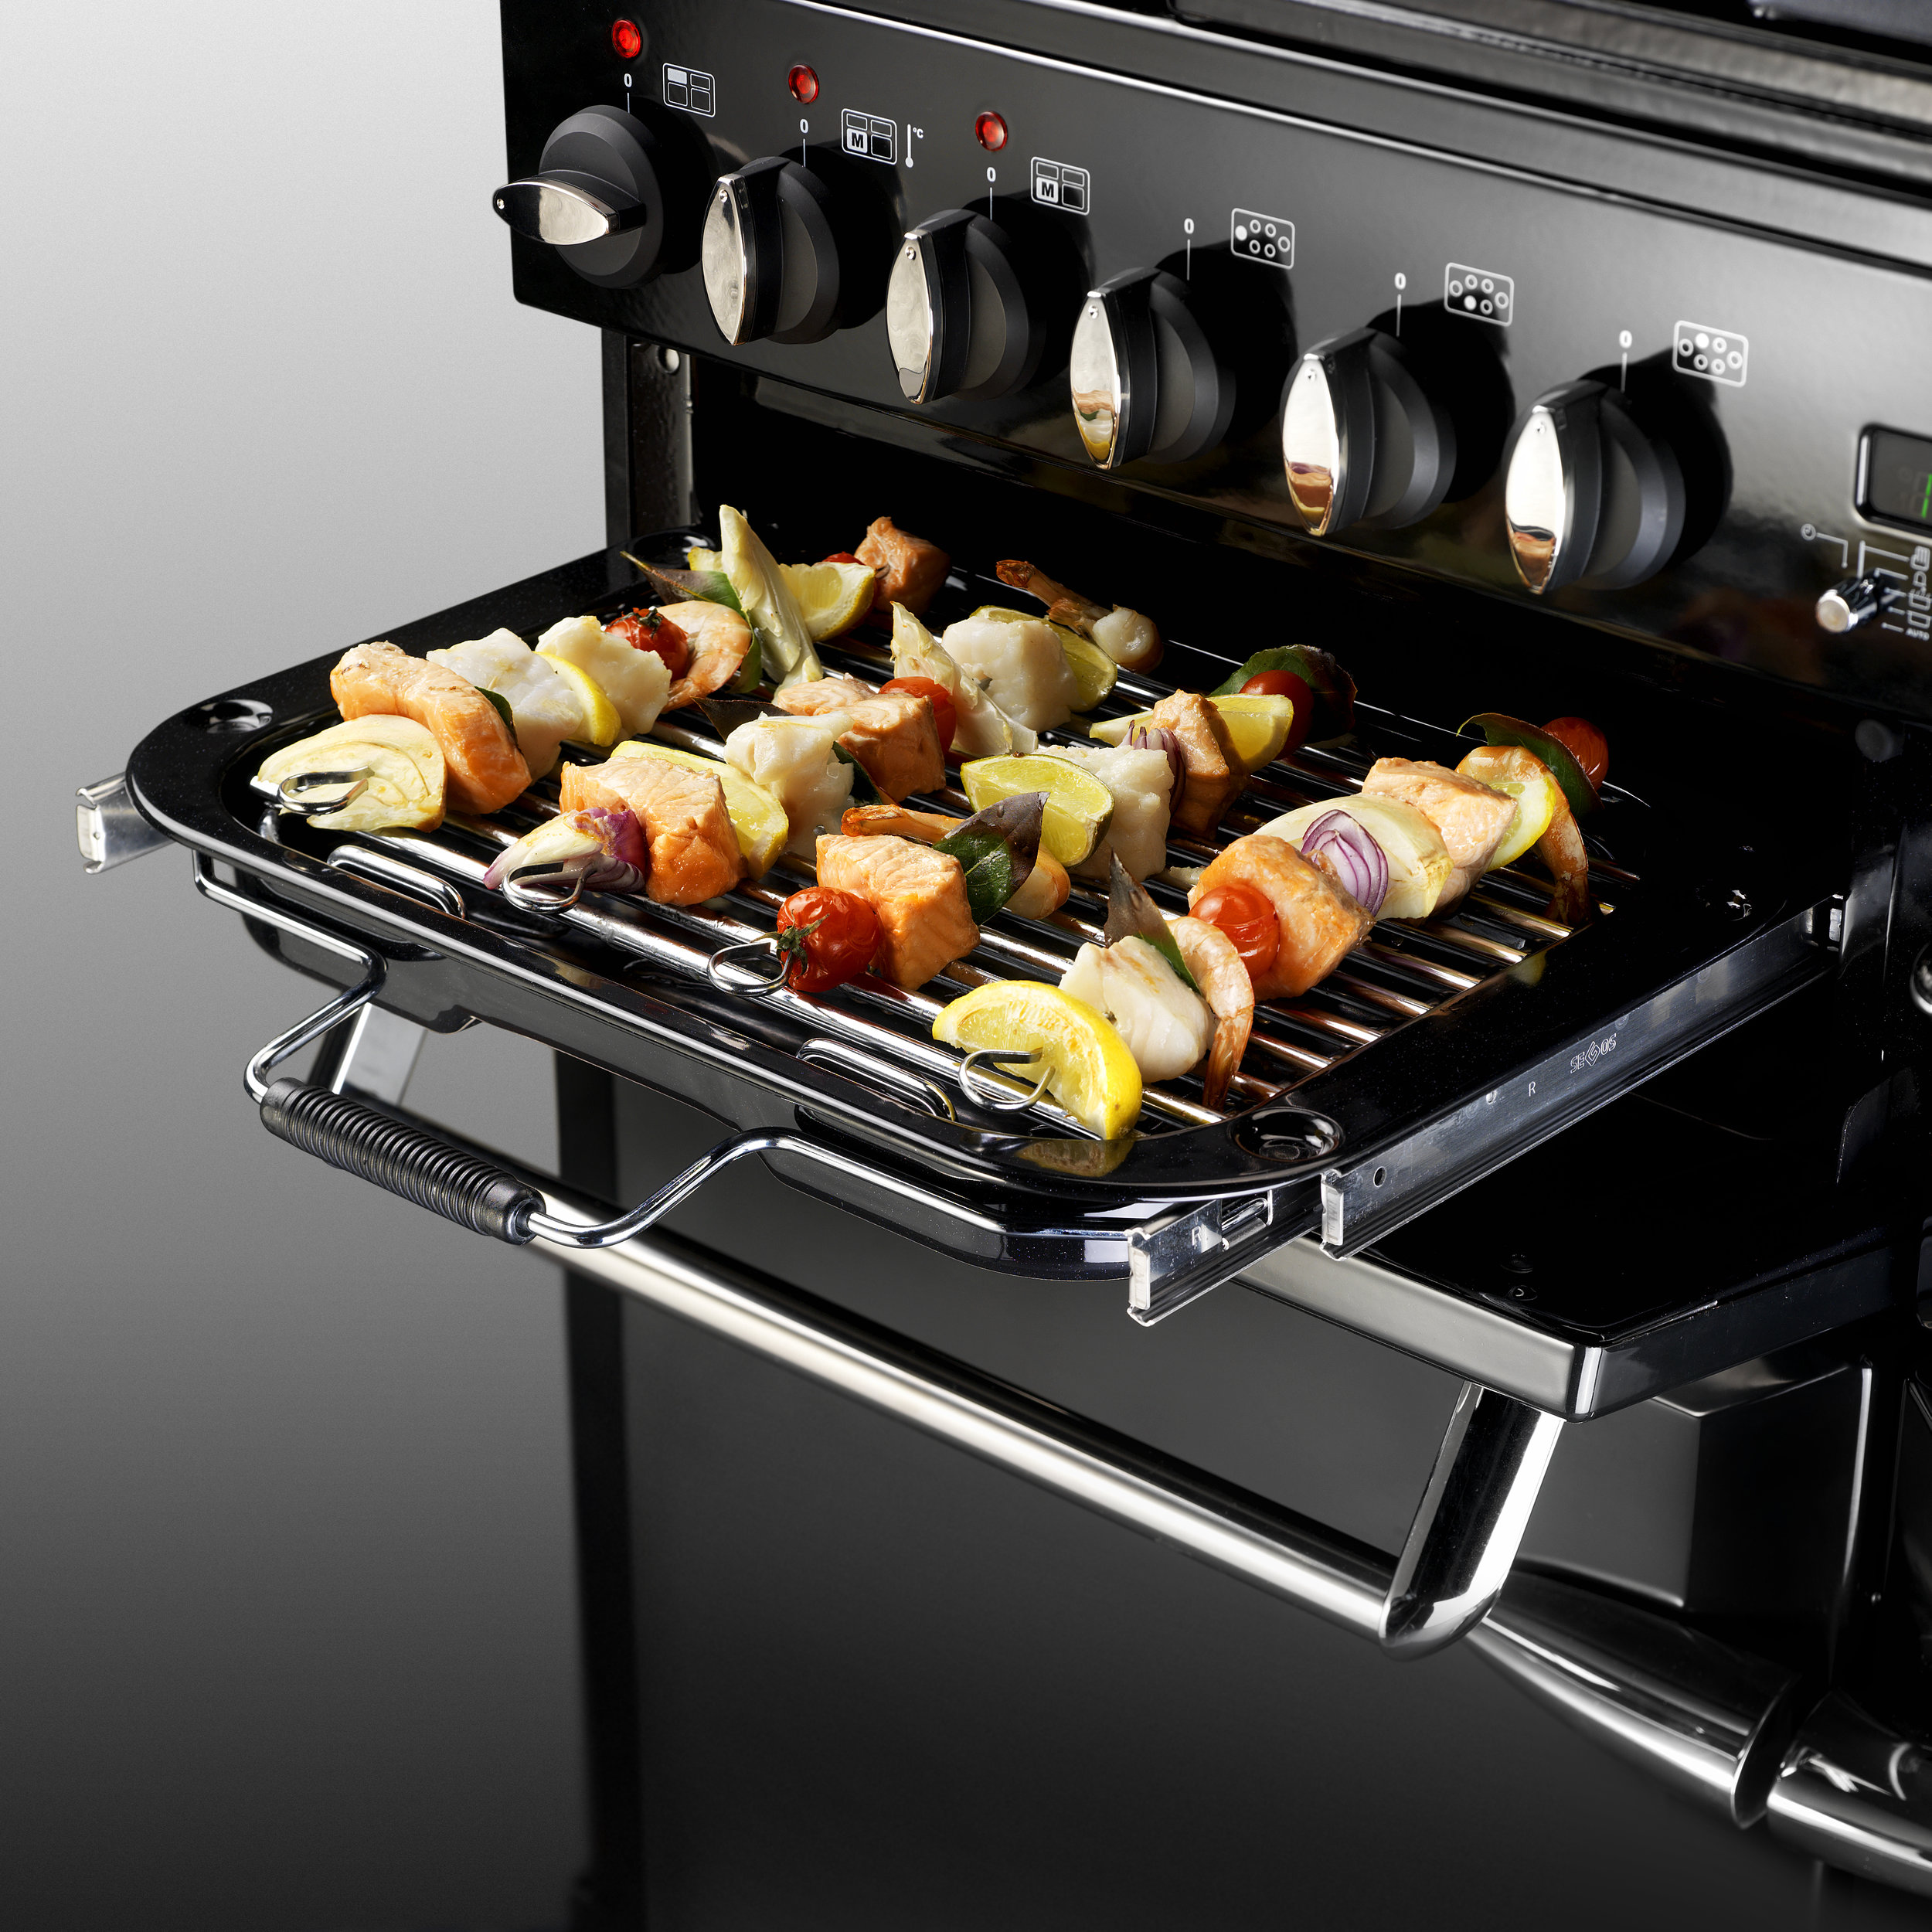 AGA_Masterchef 110_BLACK_Fish Kebabs.jpg